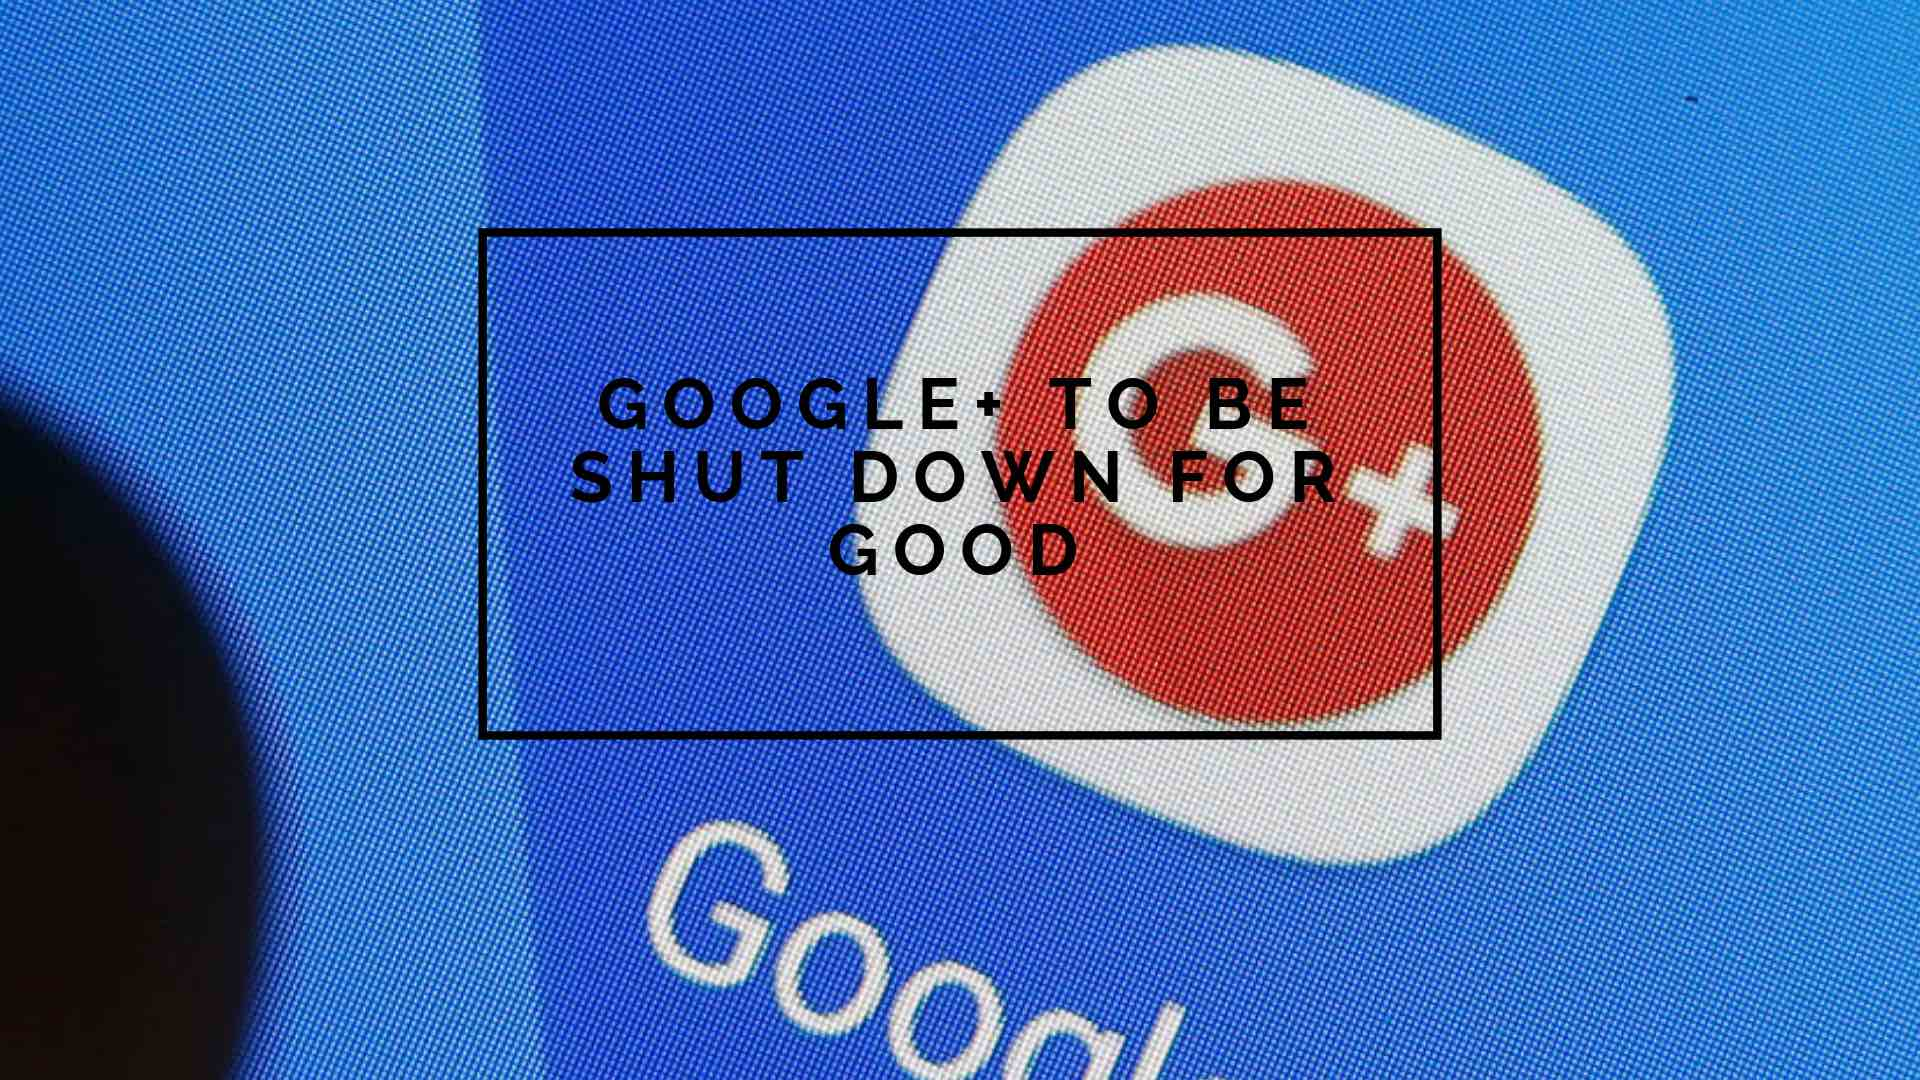 Google+ is to be shut down in 2019